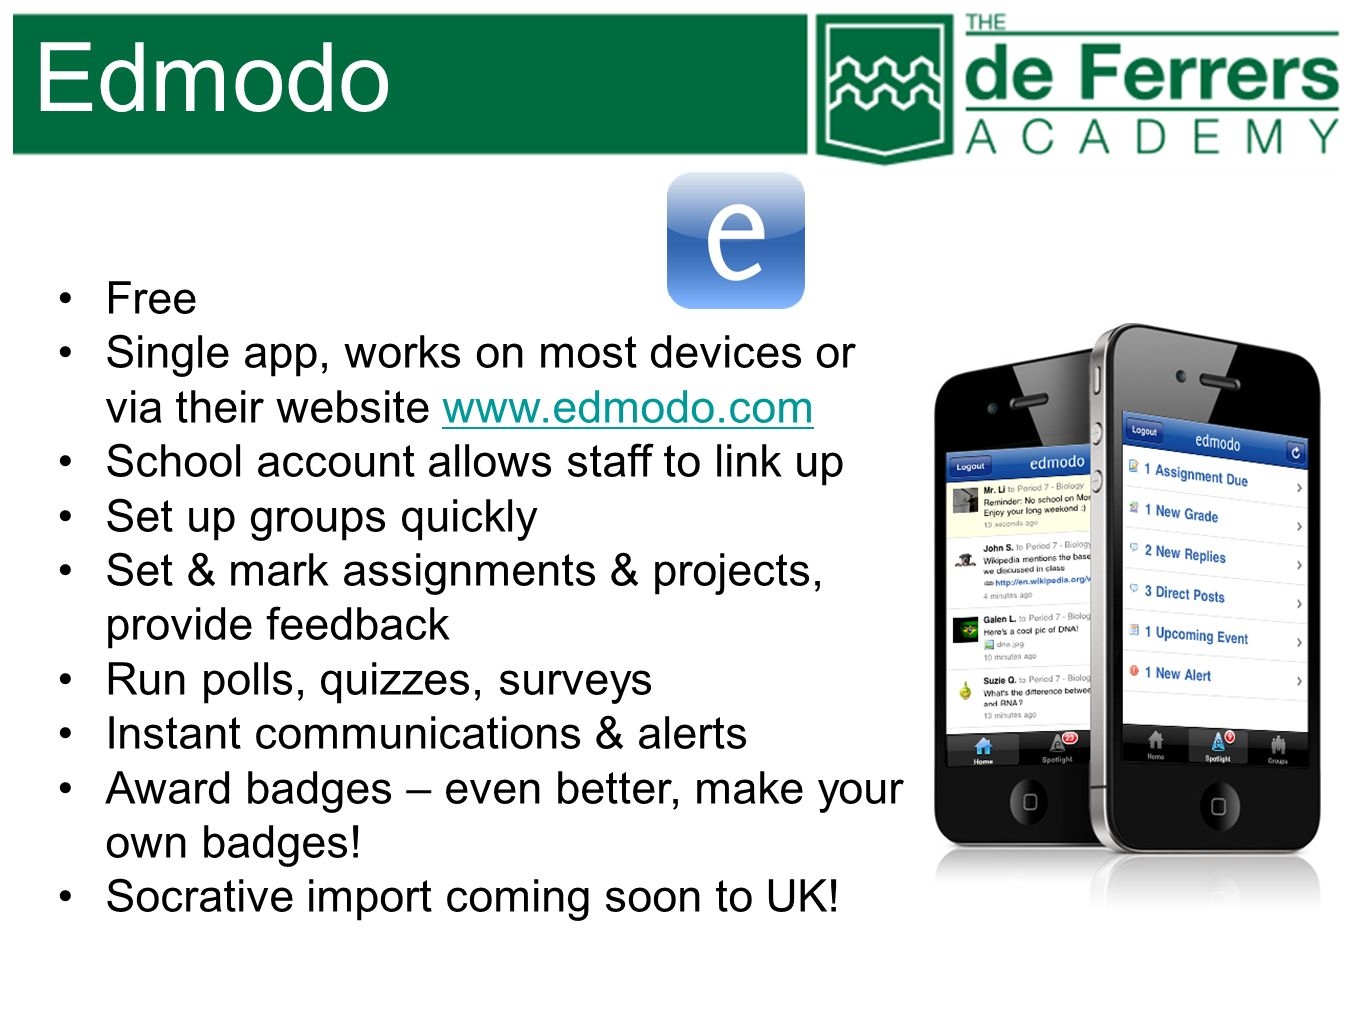 Edmodo Free. Single app, works on most devices or via their website www.edmodo.com. School account allows staff to link up.